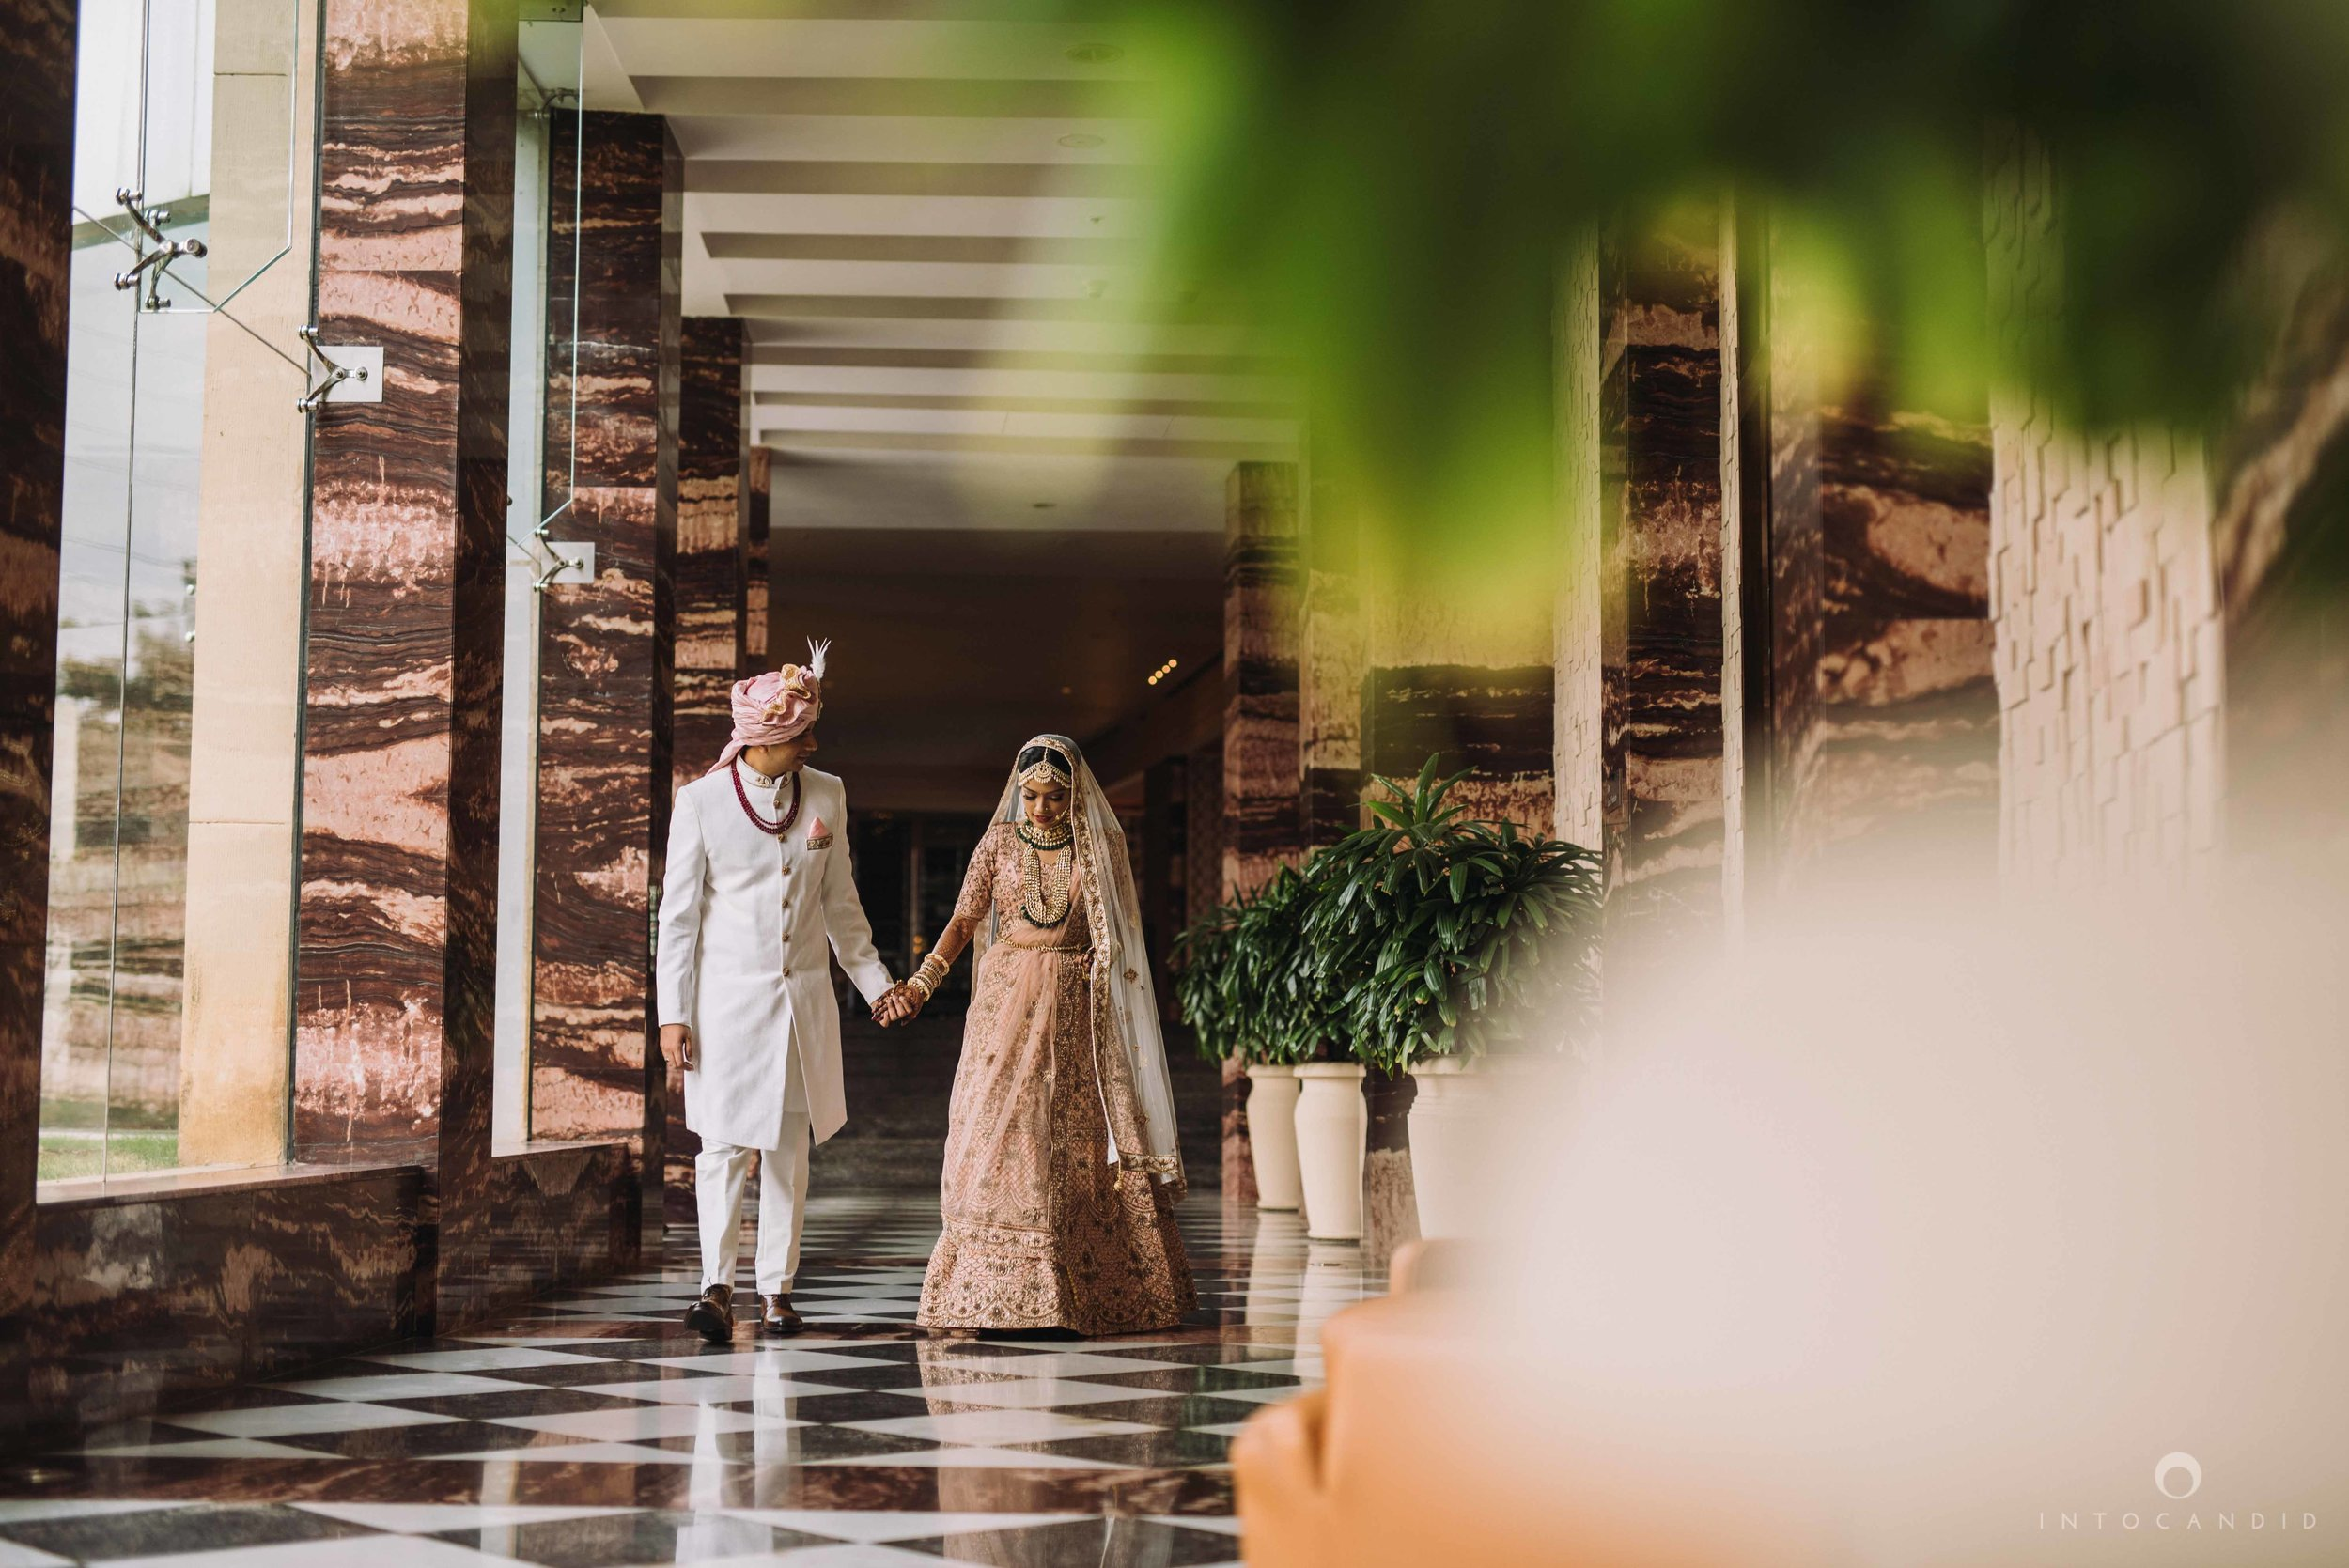 Candid_wedding_photographer_in_mumbai_20.JPG